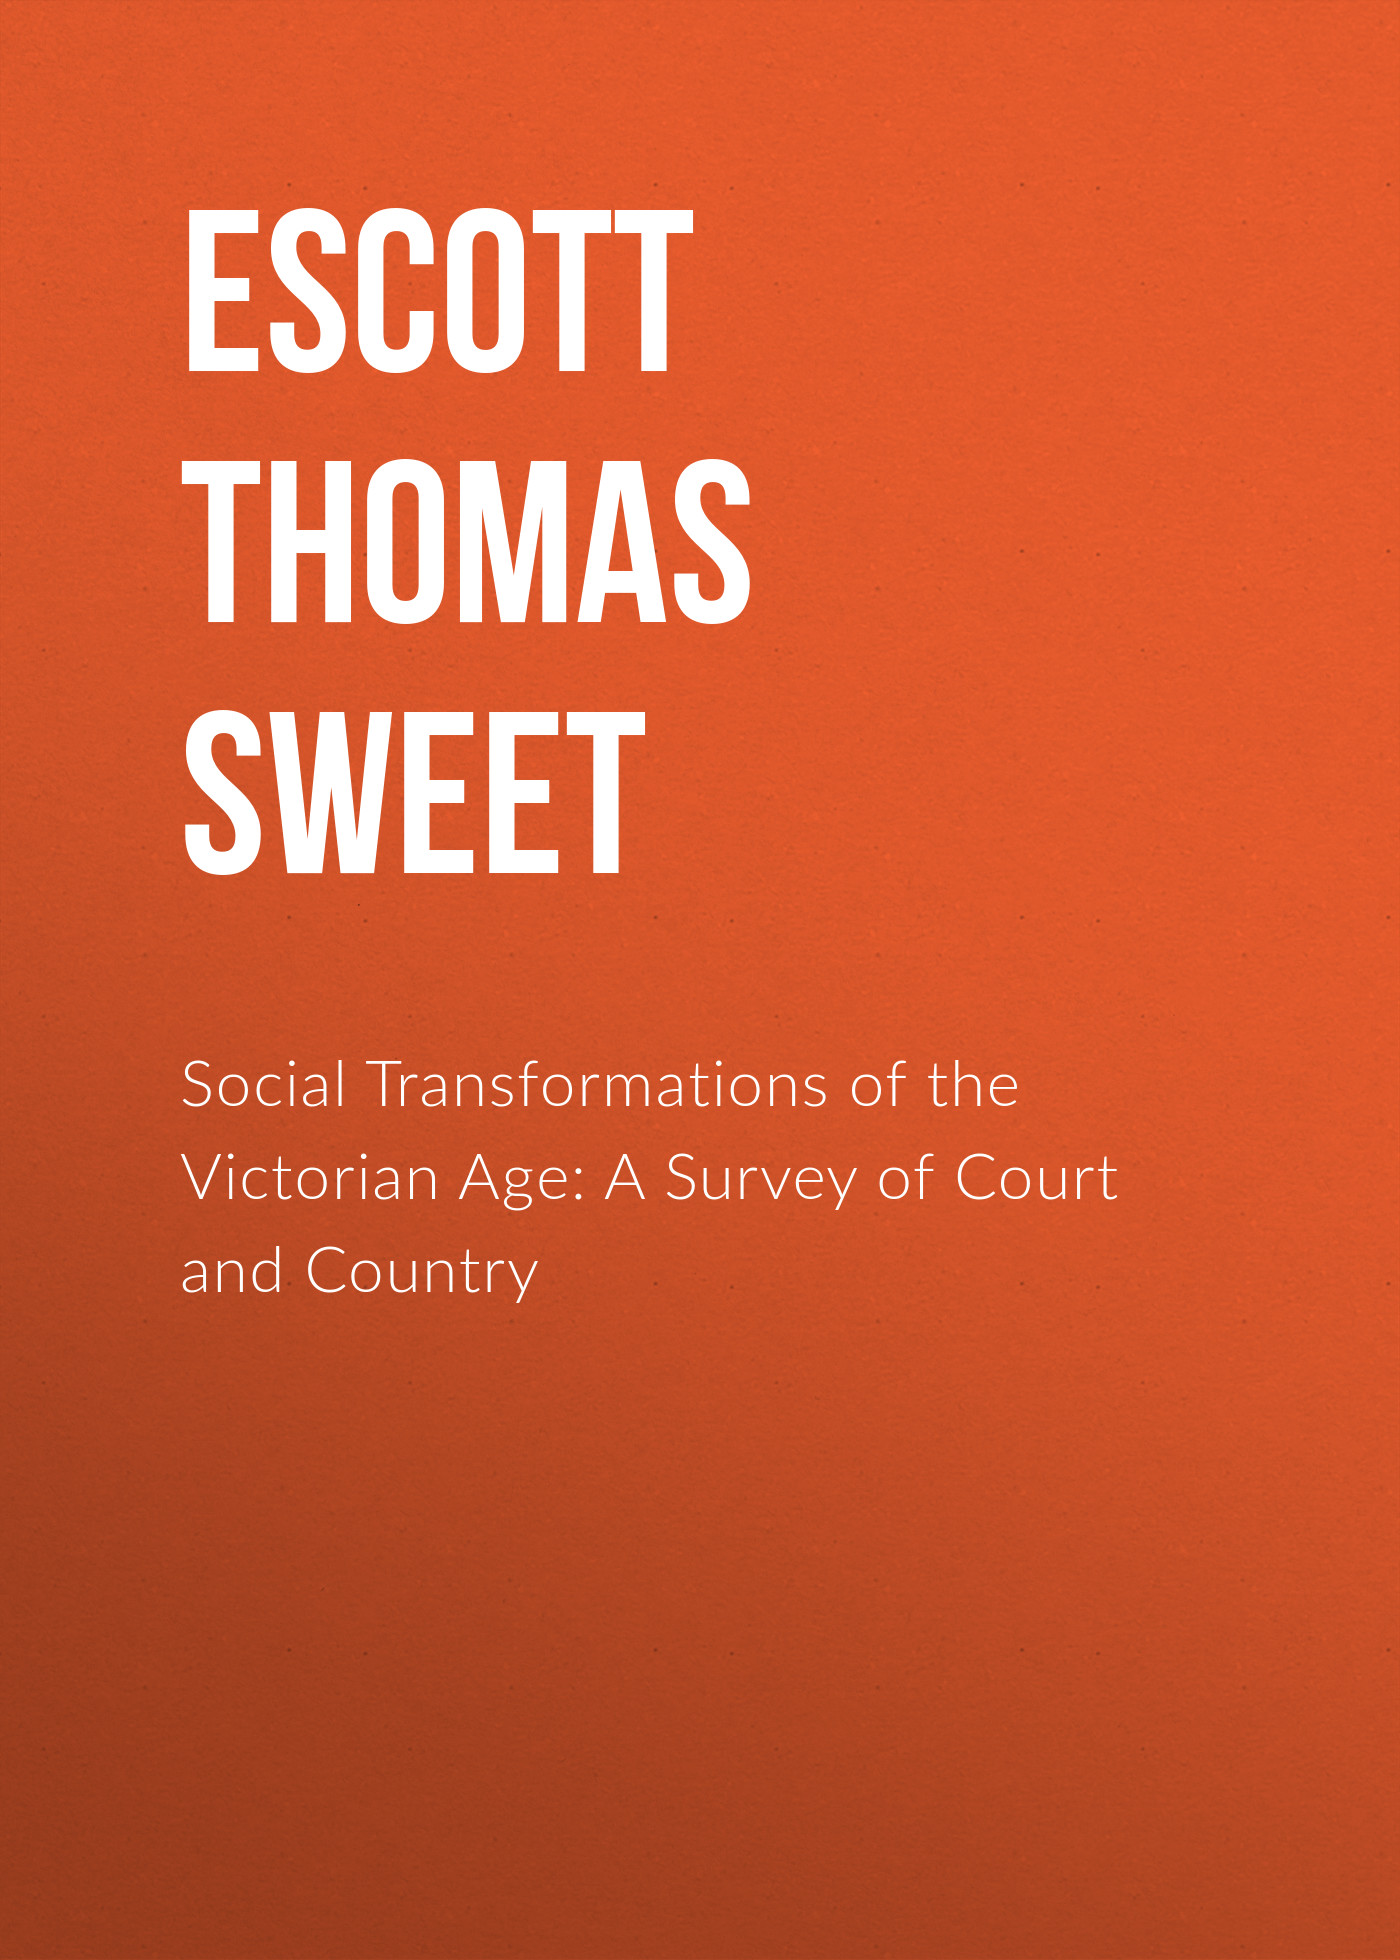 Escott Thomas Hay Sweet Social Transformations of the Victorian Age: A Survey of Court and Country redken redken chromatics 6 03 6nw натуральный теплый